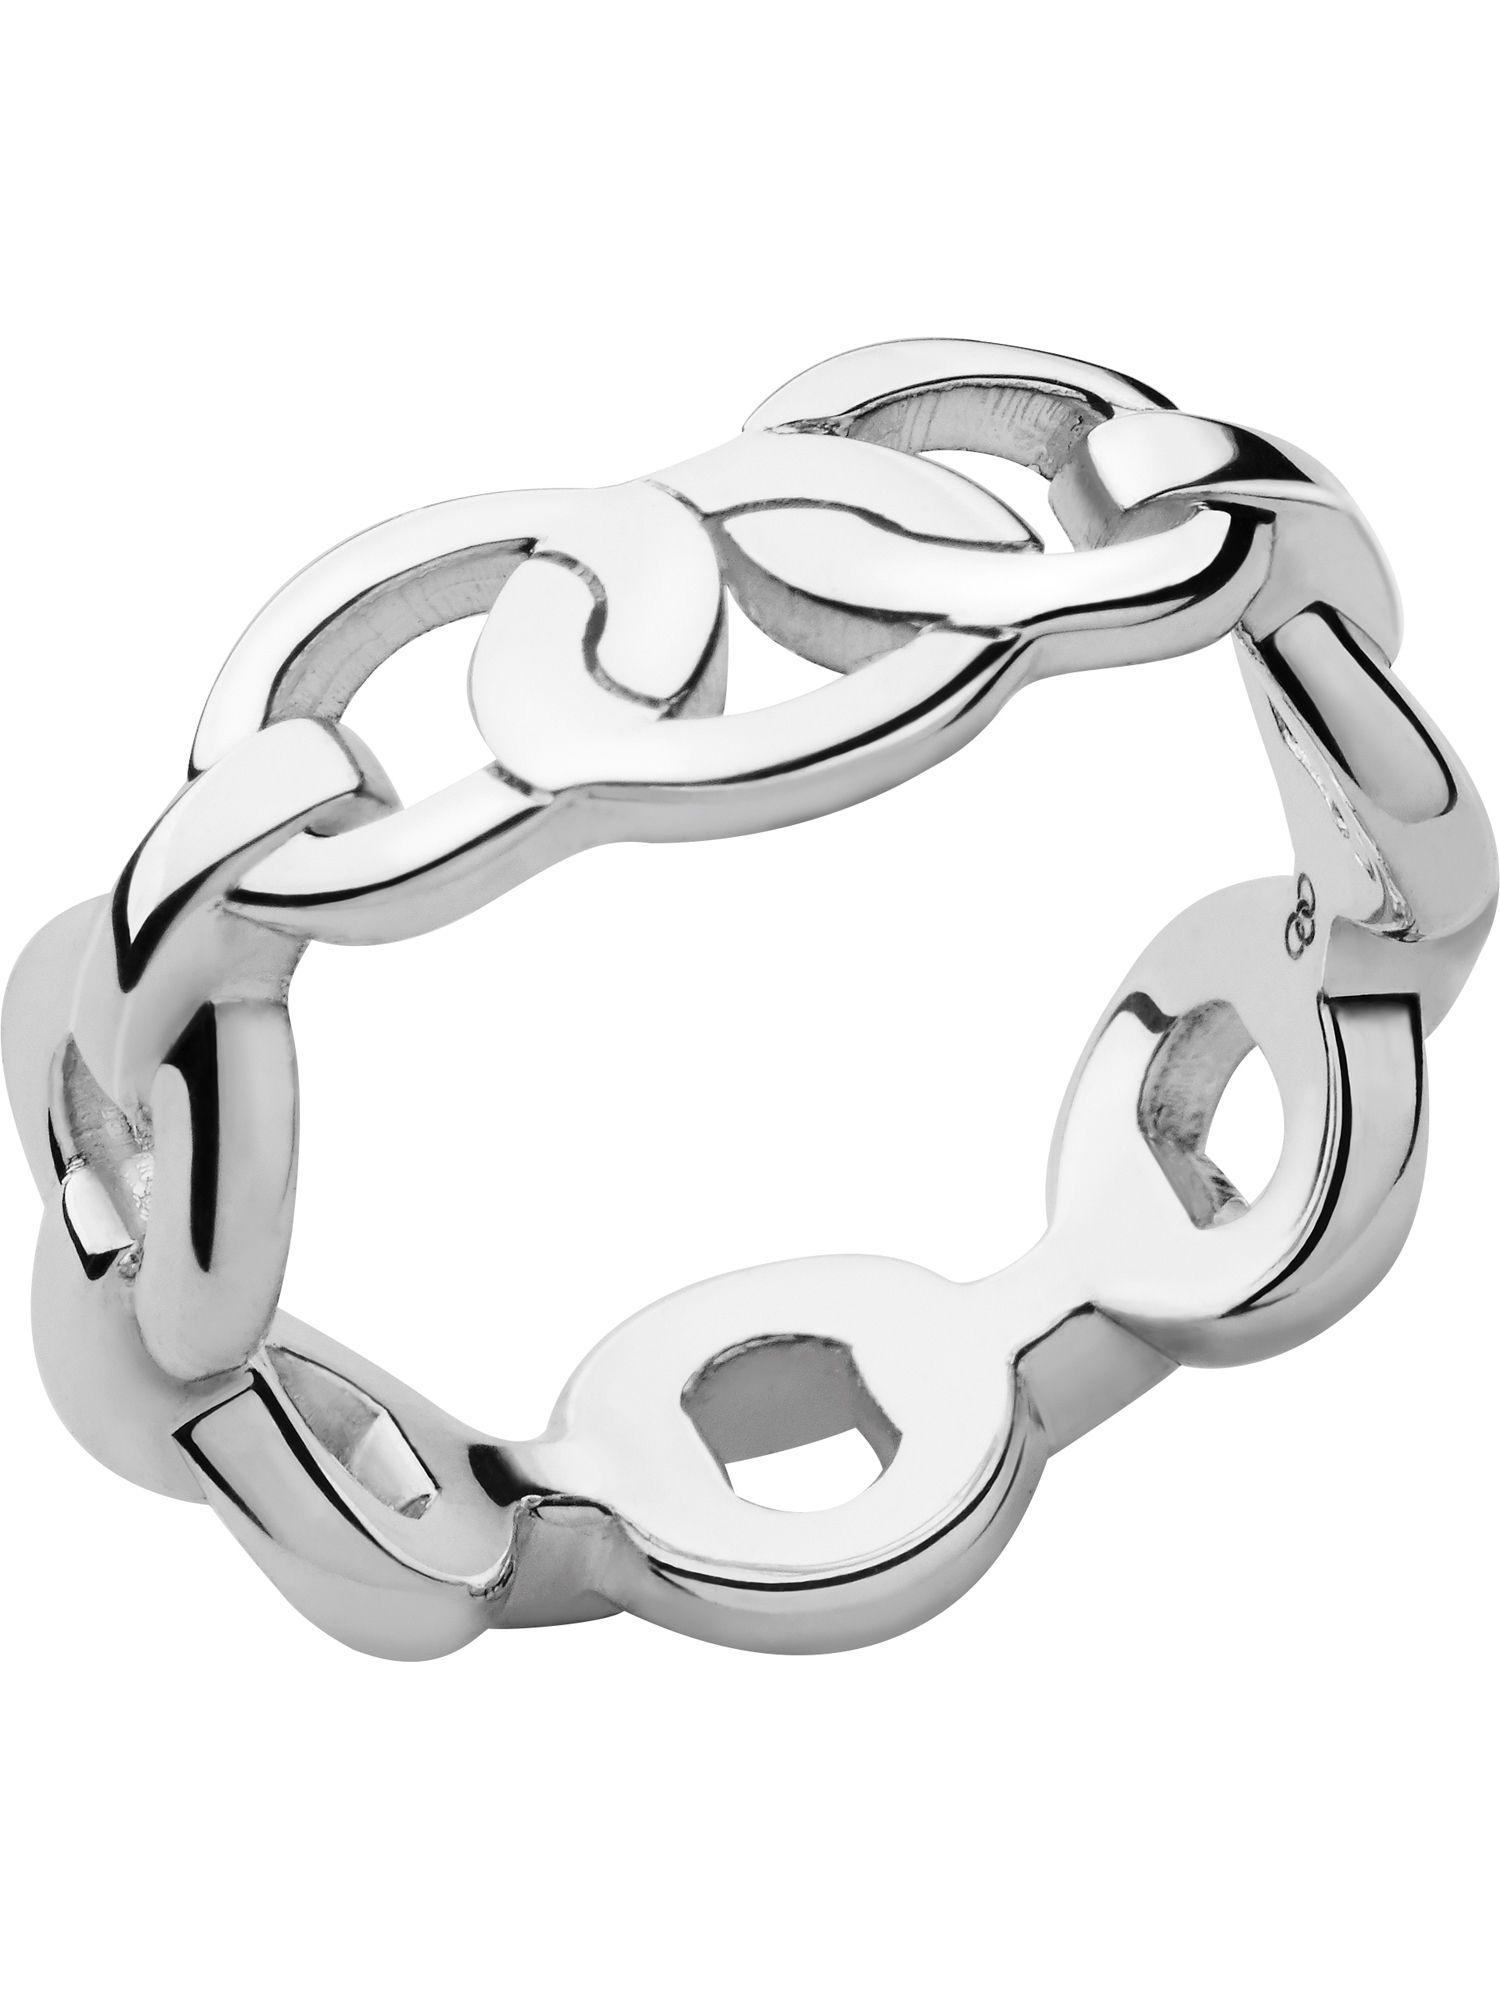 Silver Infinity ring. Size N